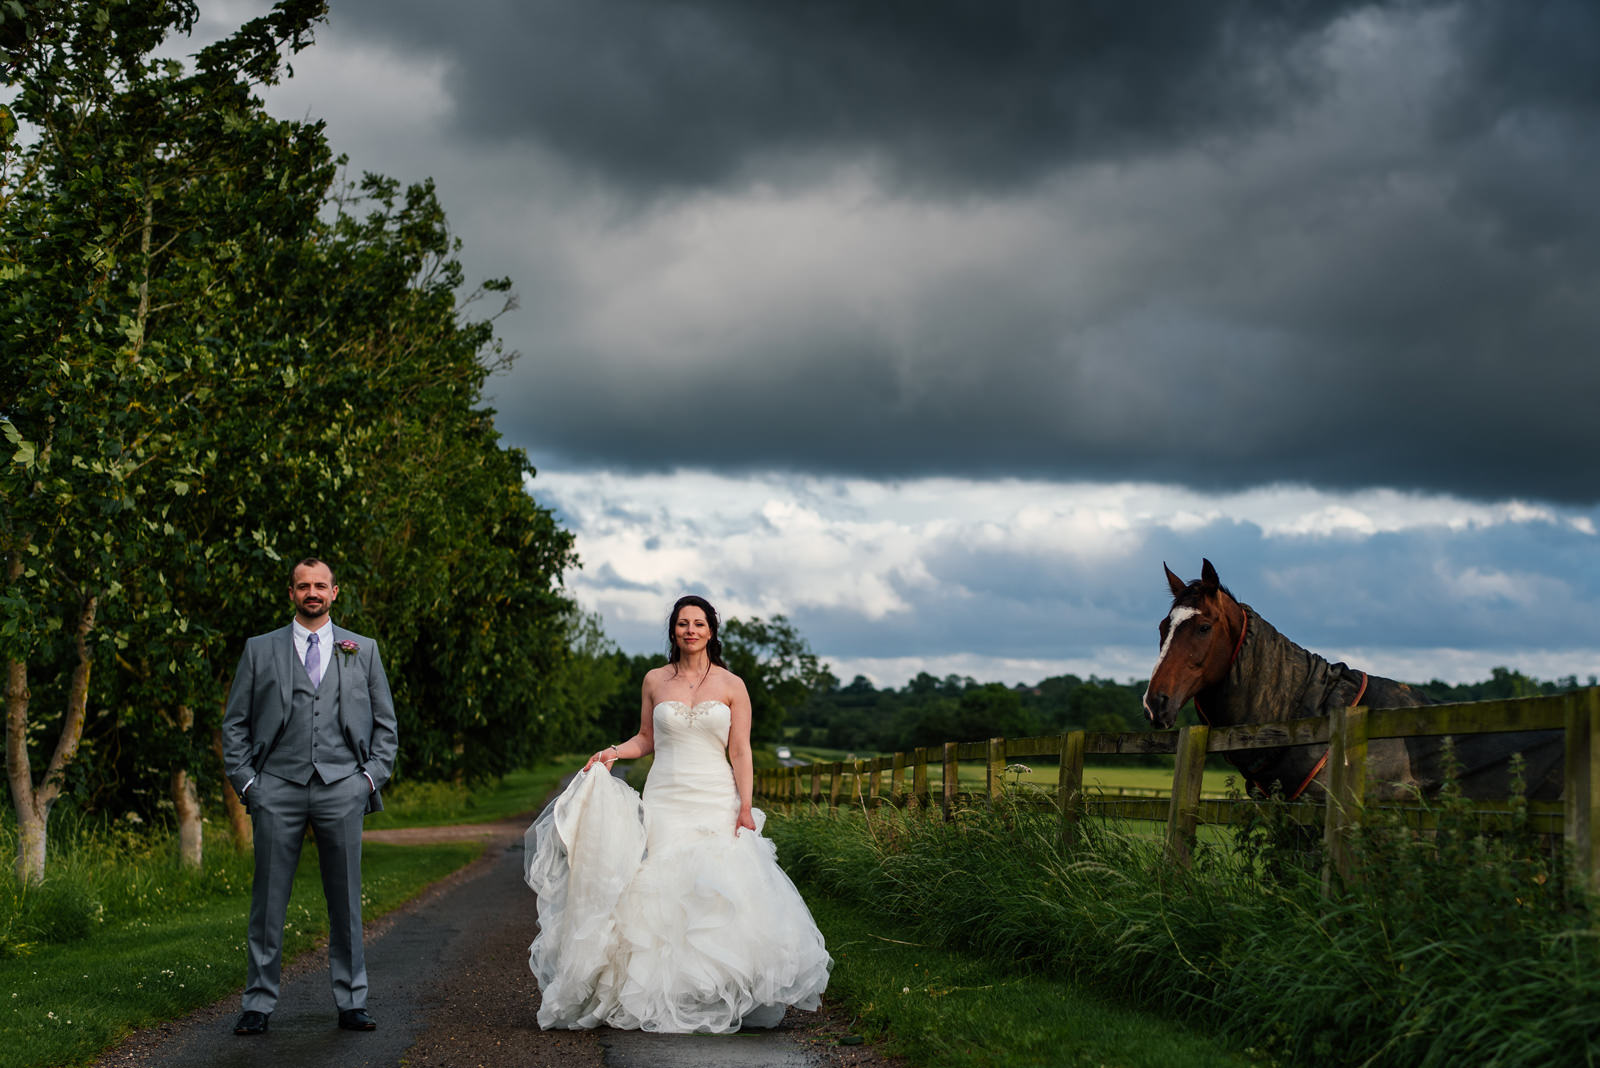 Crockwell Farm wedding portrait